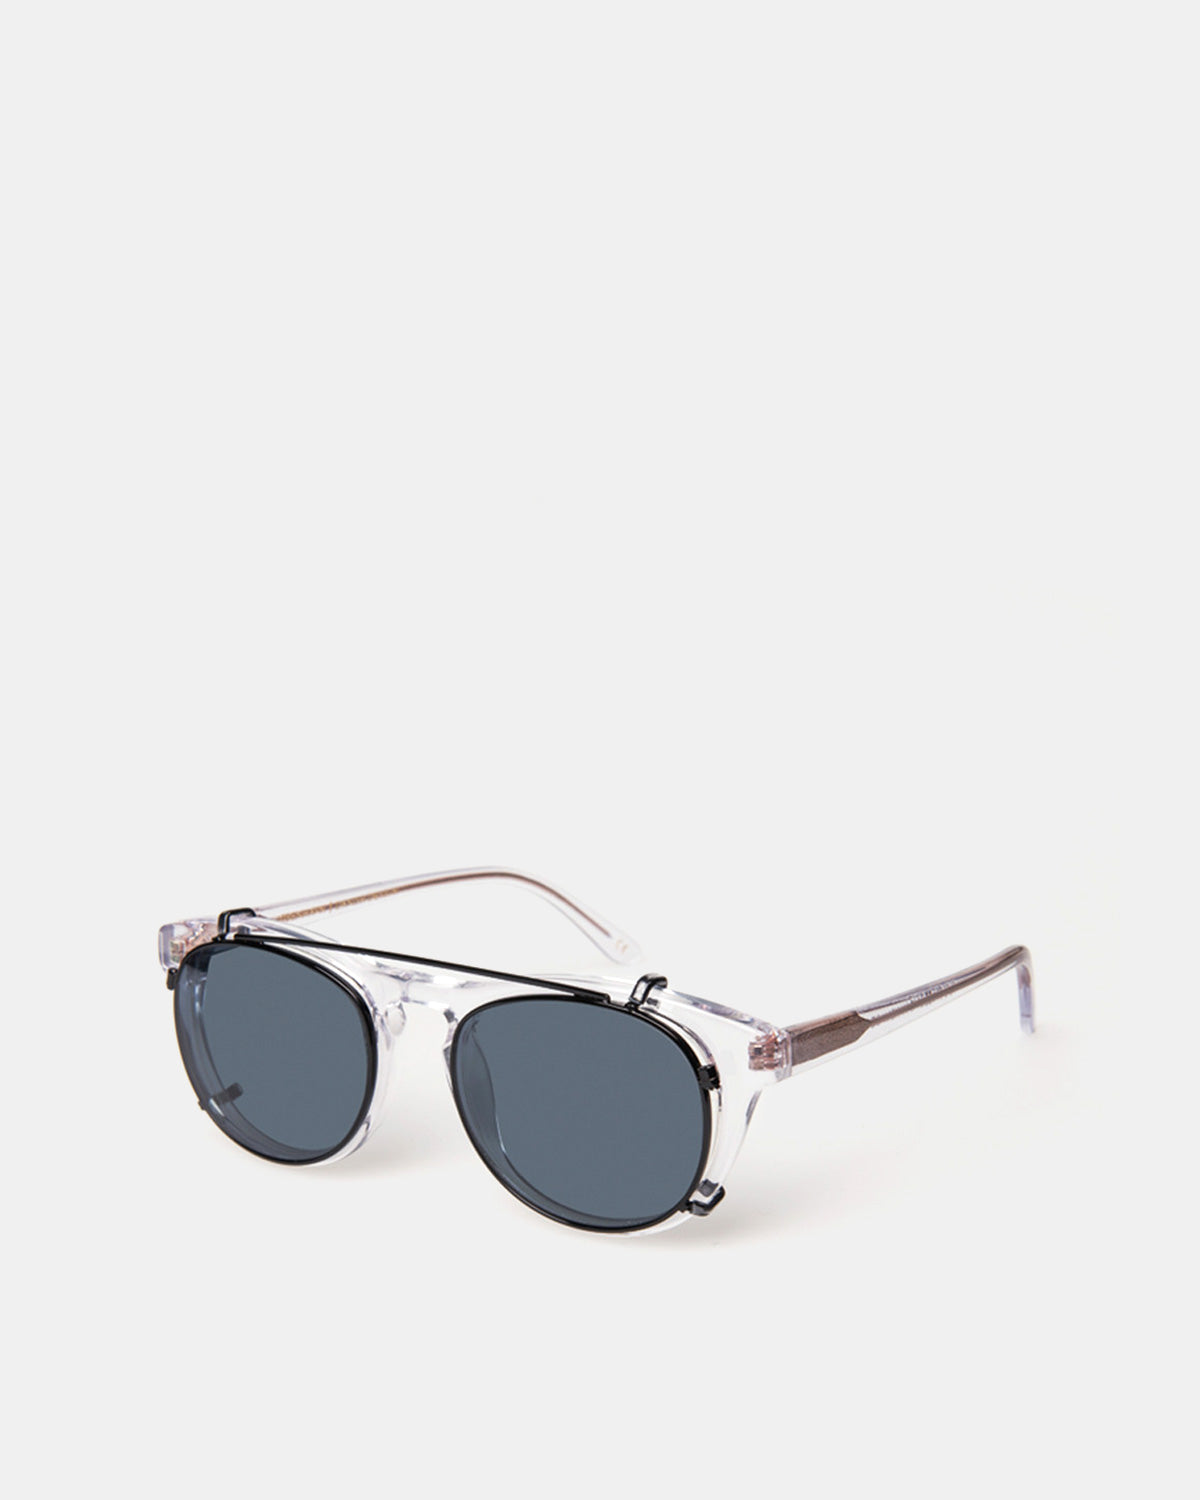 Han Kjobenhavn - Timeless Clip on Sunglasses (Blue Lenses)